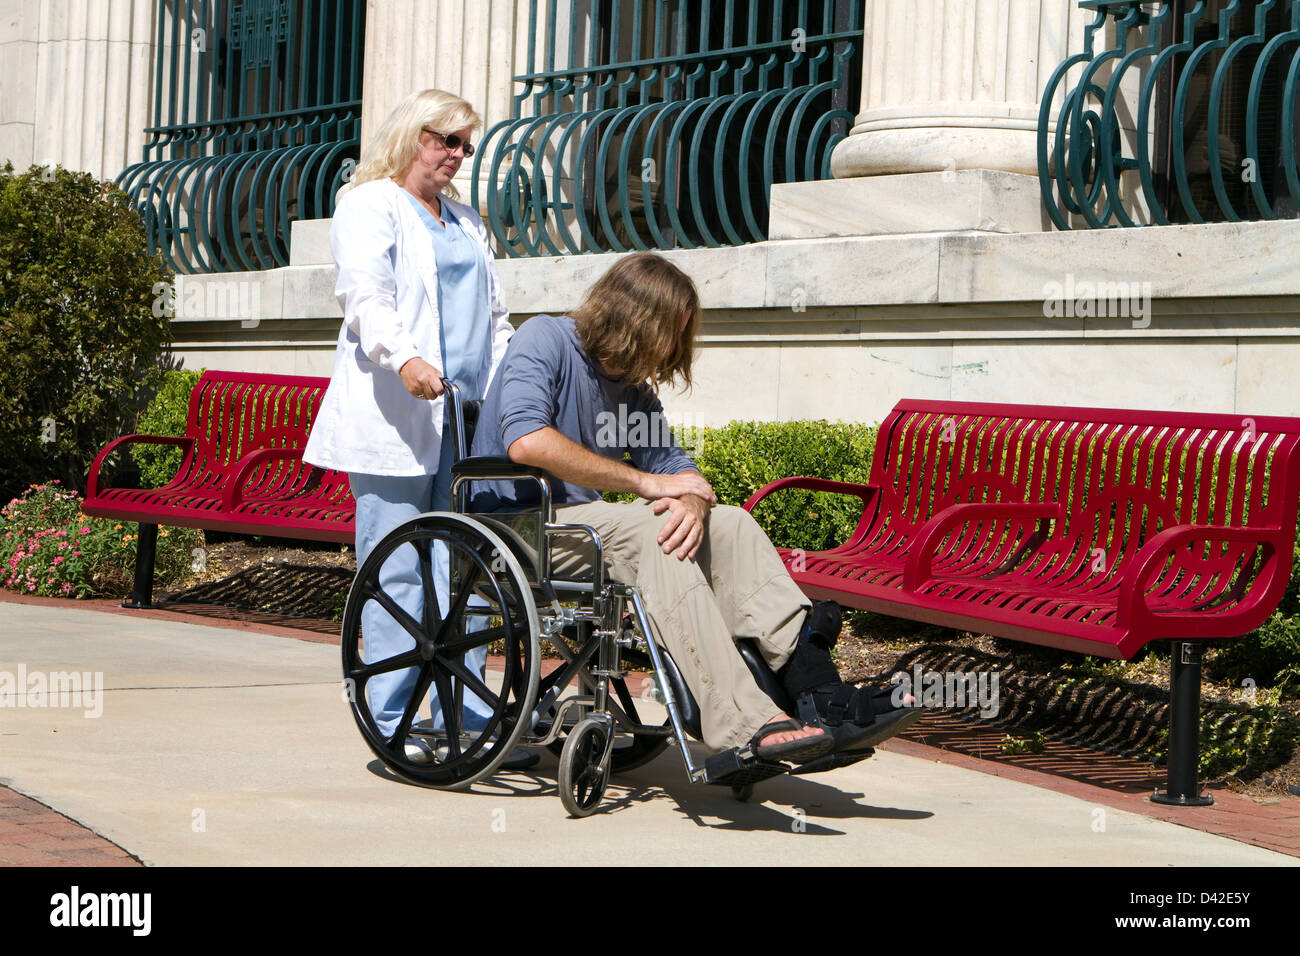 Nurse caregiver looks after a disabled psychopathic patient outside a state hospital facility for the mentally insane. - Stock Image